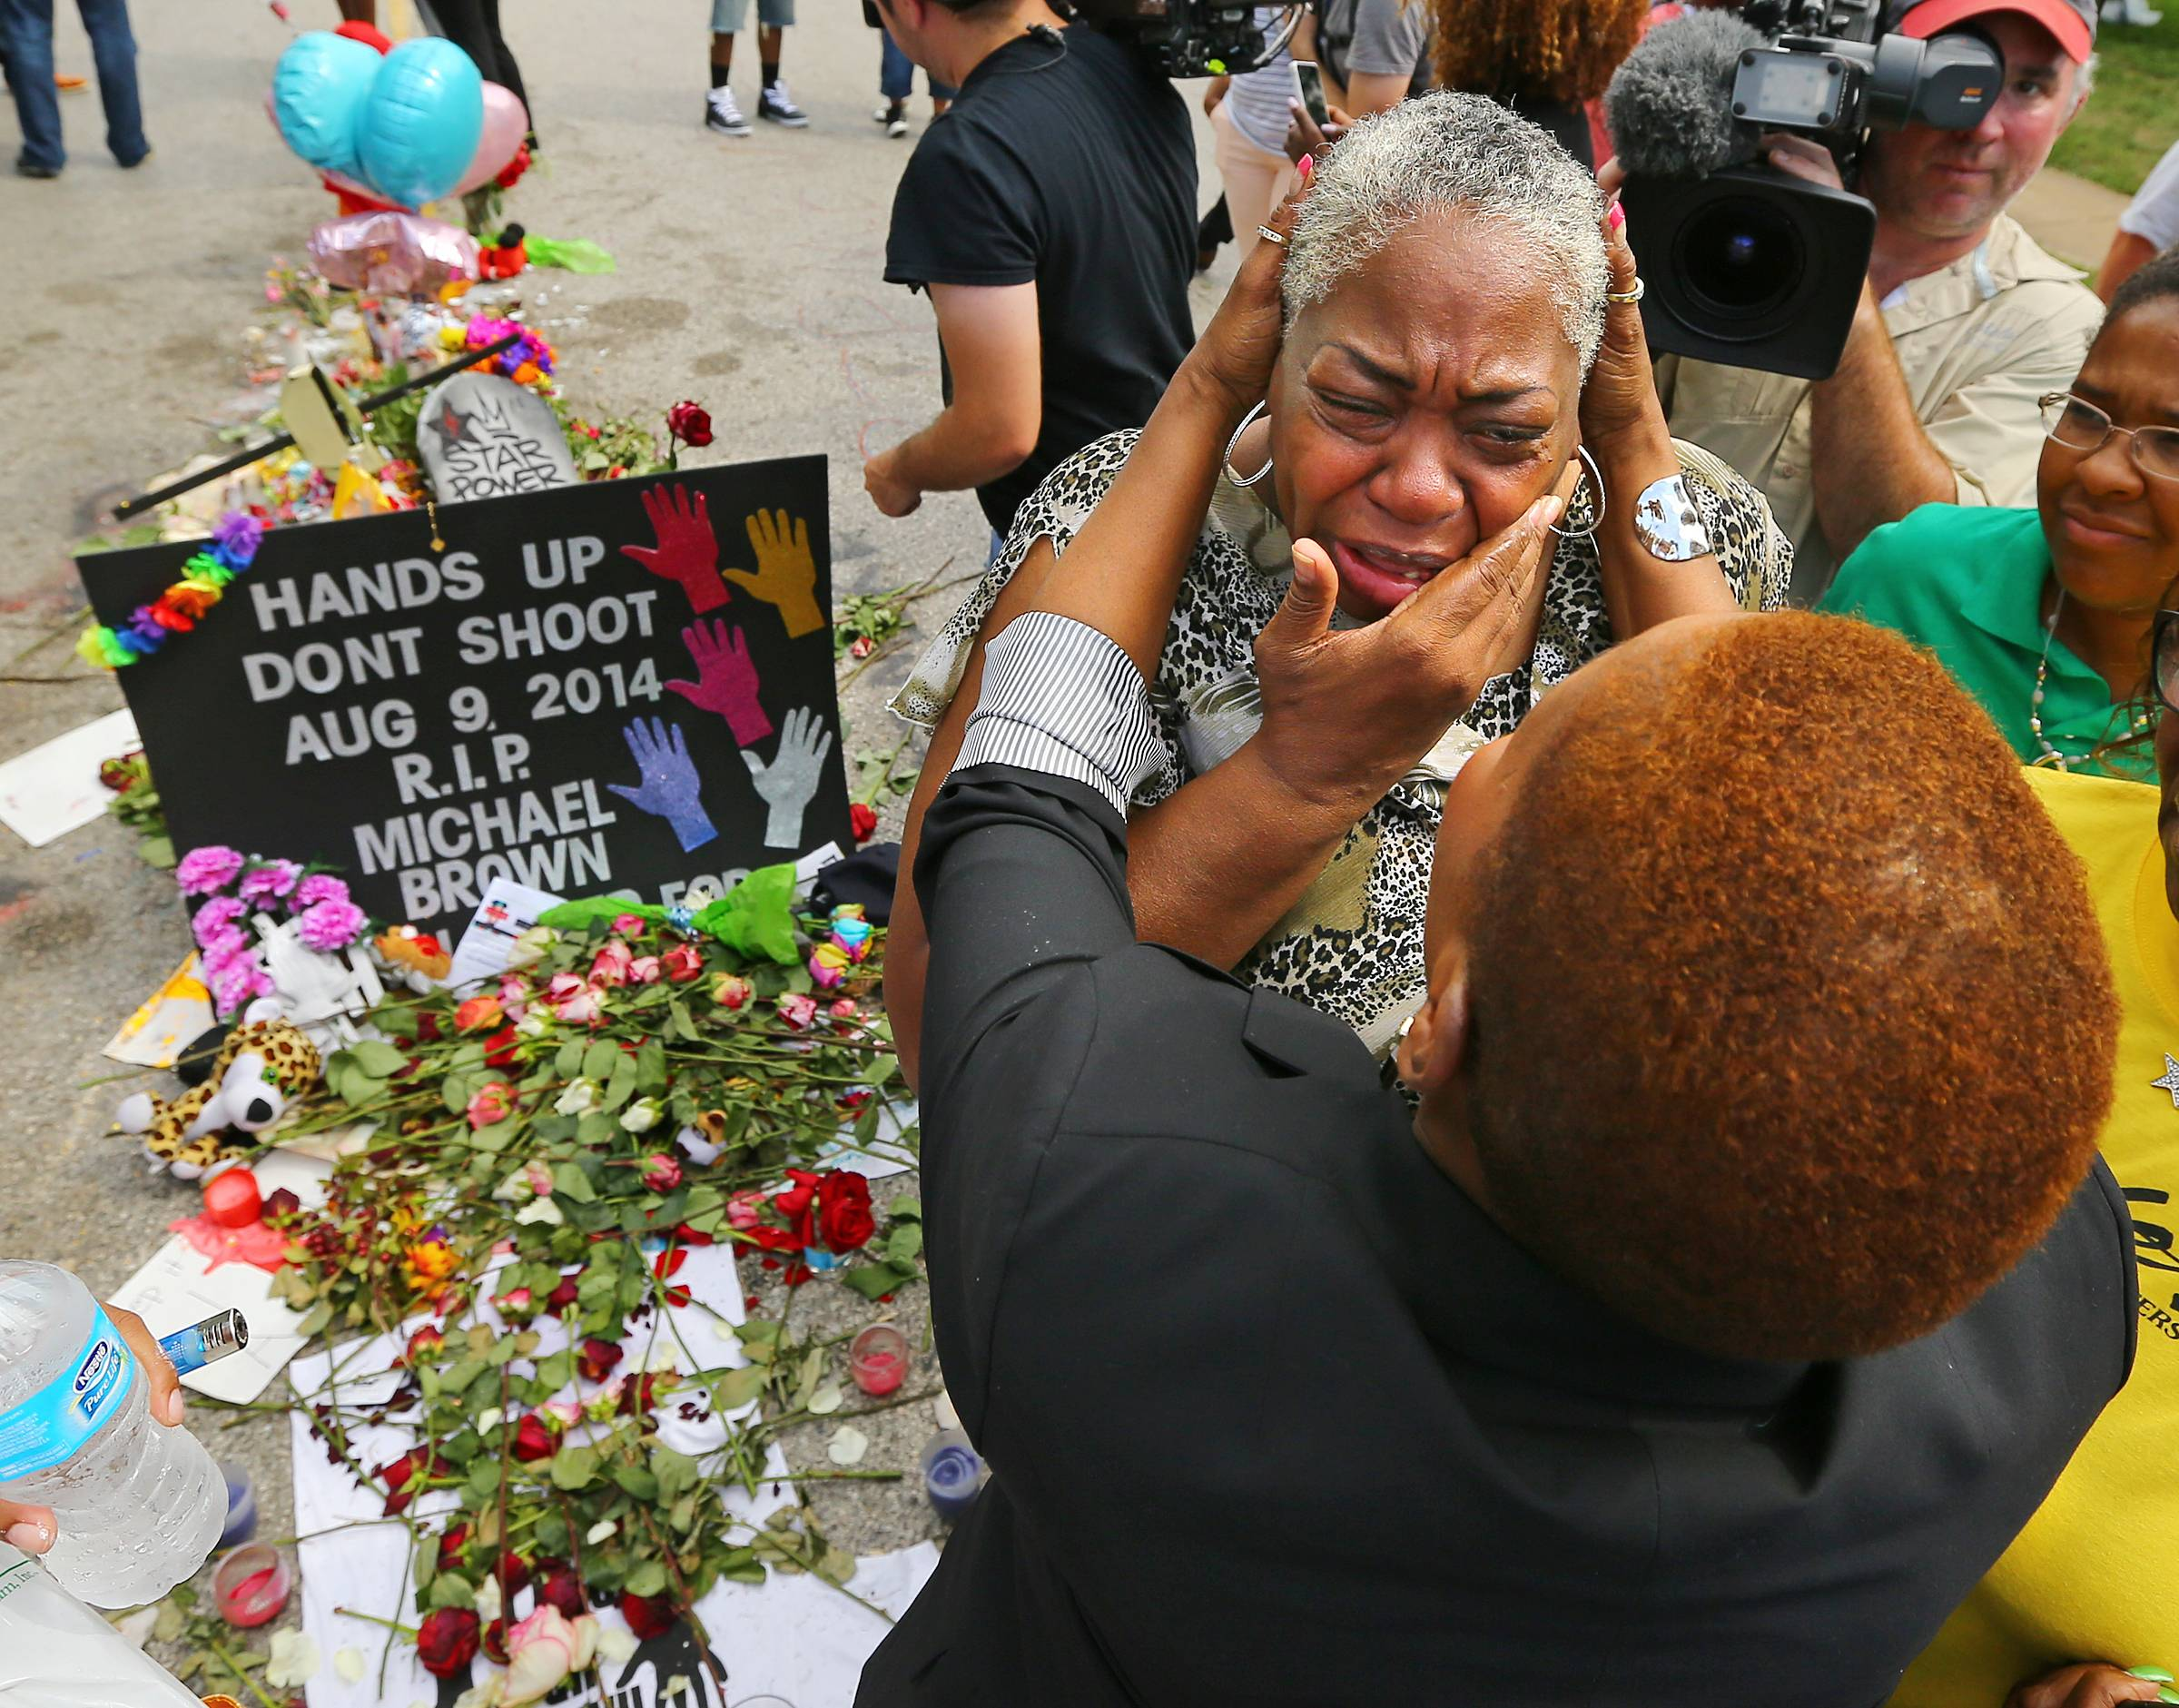 Many police killings, but only Ferguson explodes